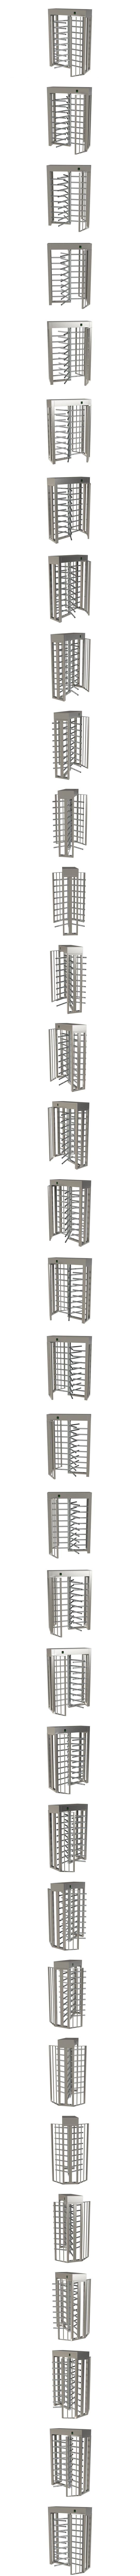 gf-4340-full-height-turnstile 360